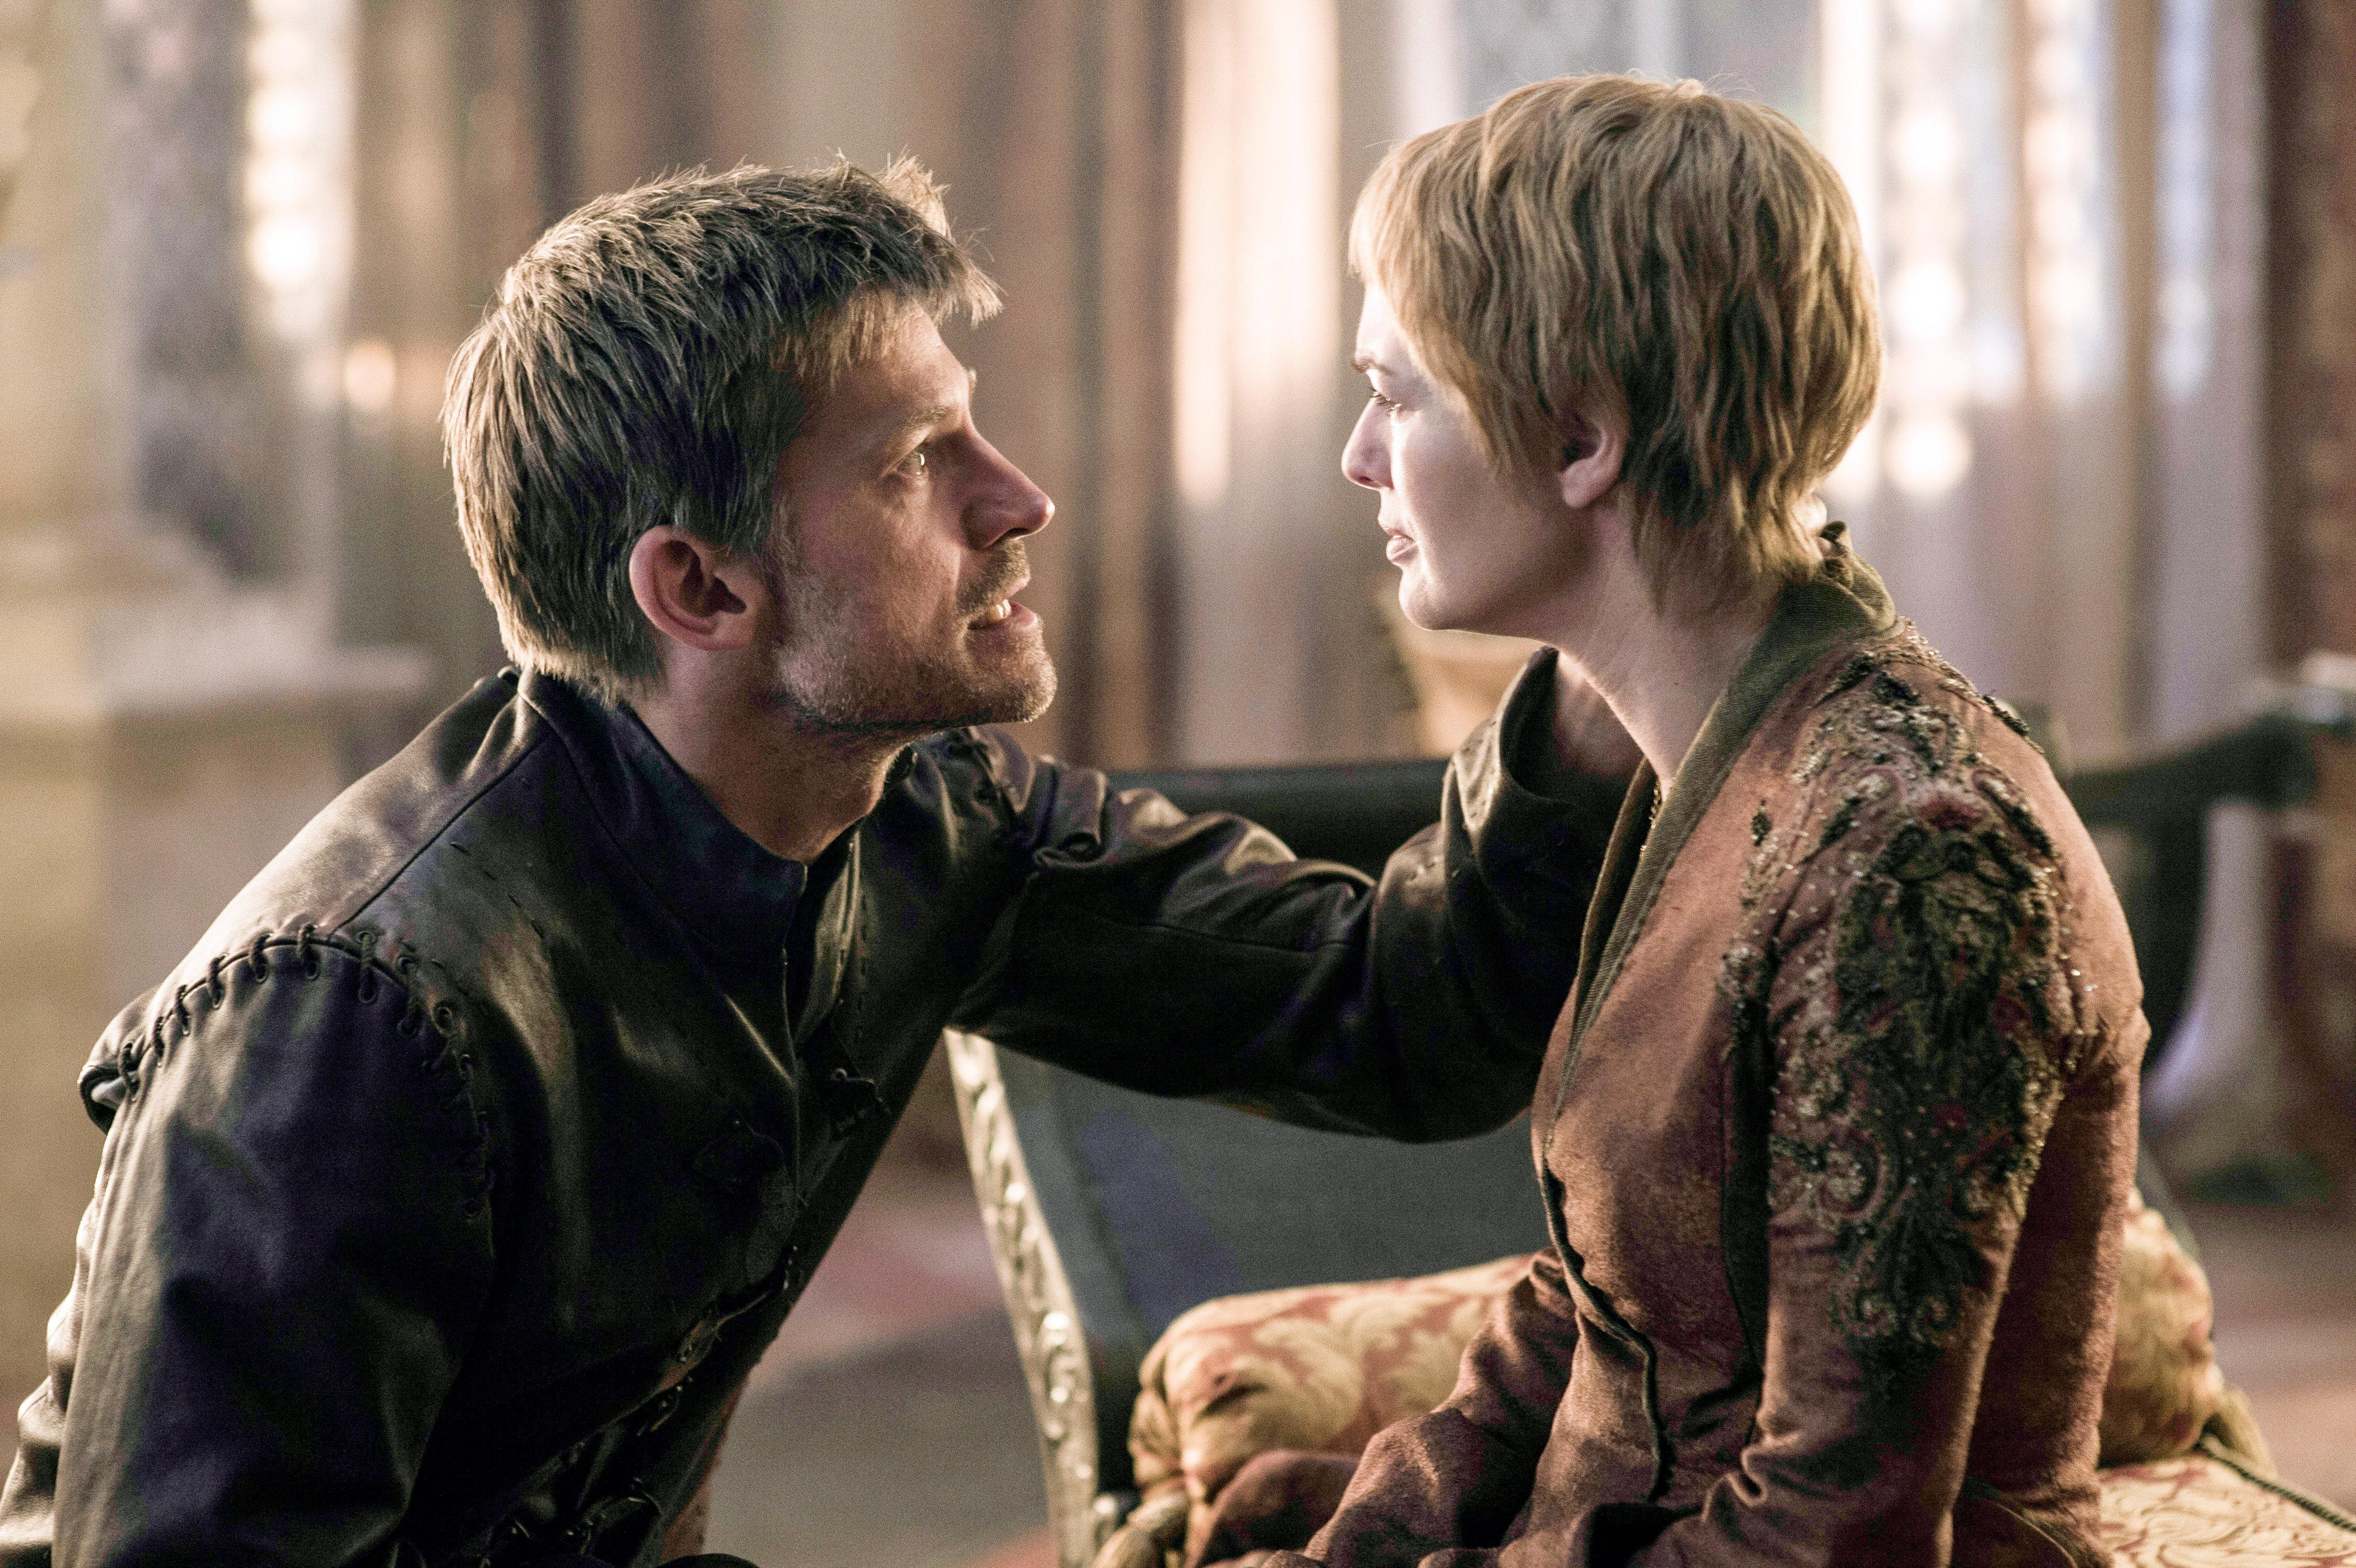 Unlike in Game of Thrones, incest was considered a crime in